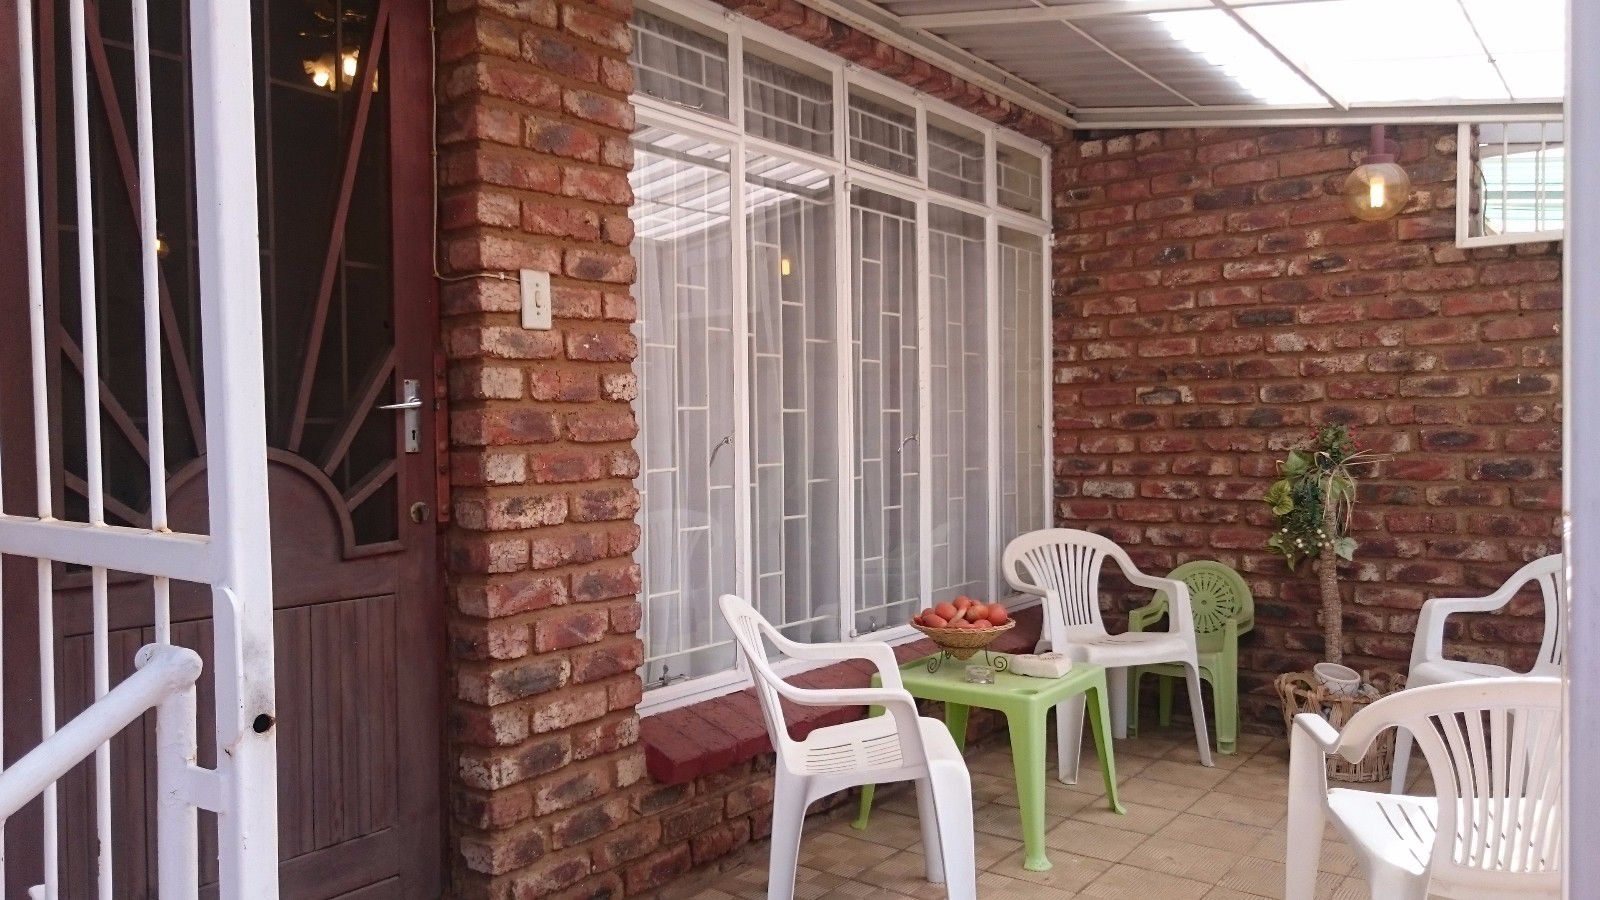 Potchefstroom Central property for sale. Ref No: 13392383. Picture no 1